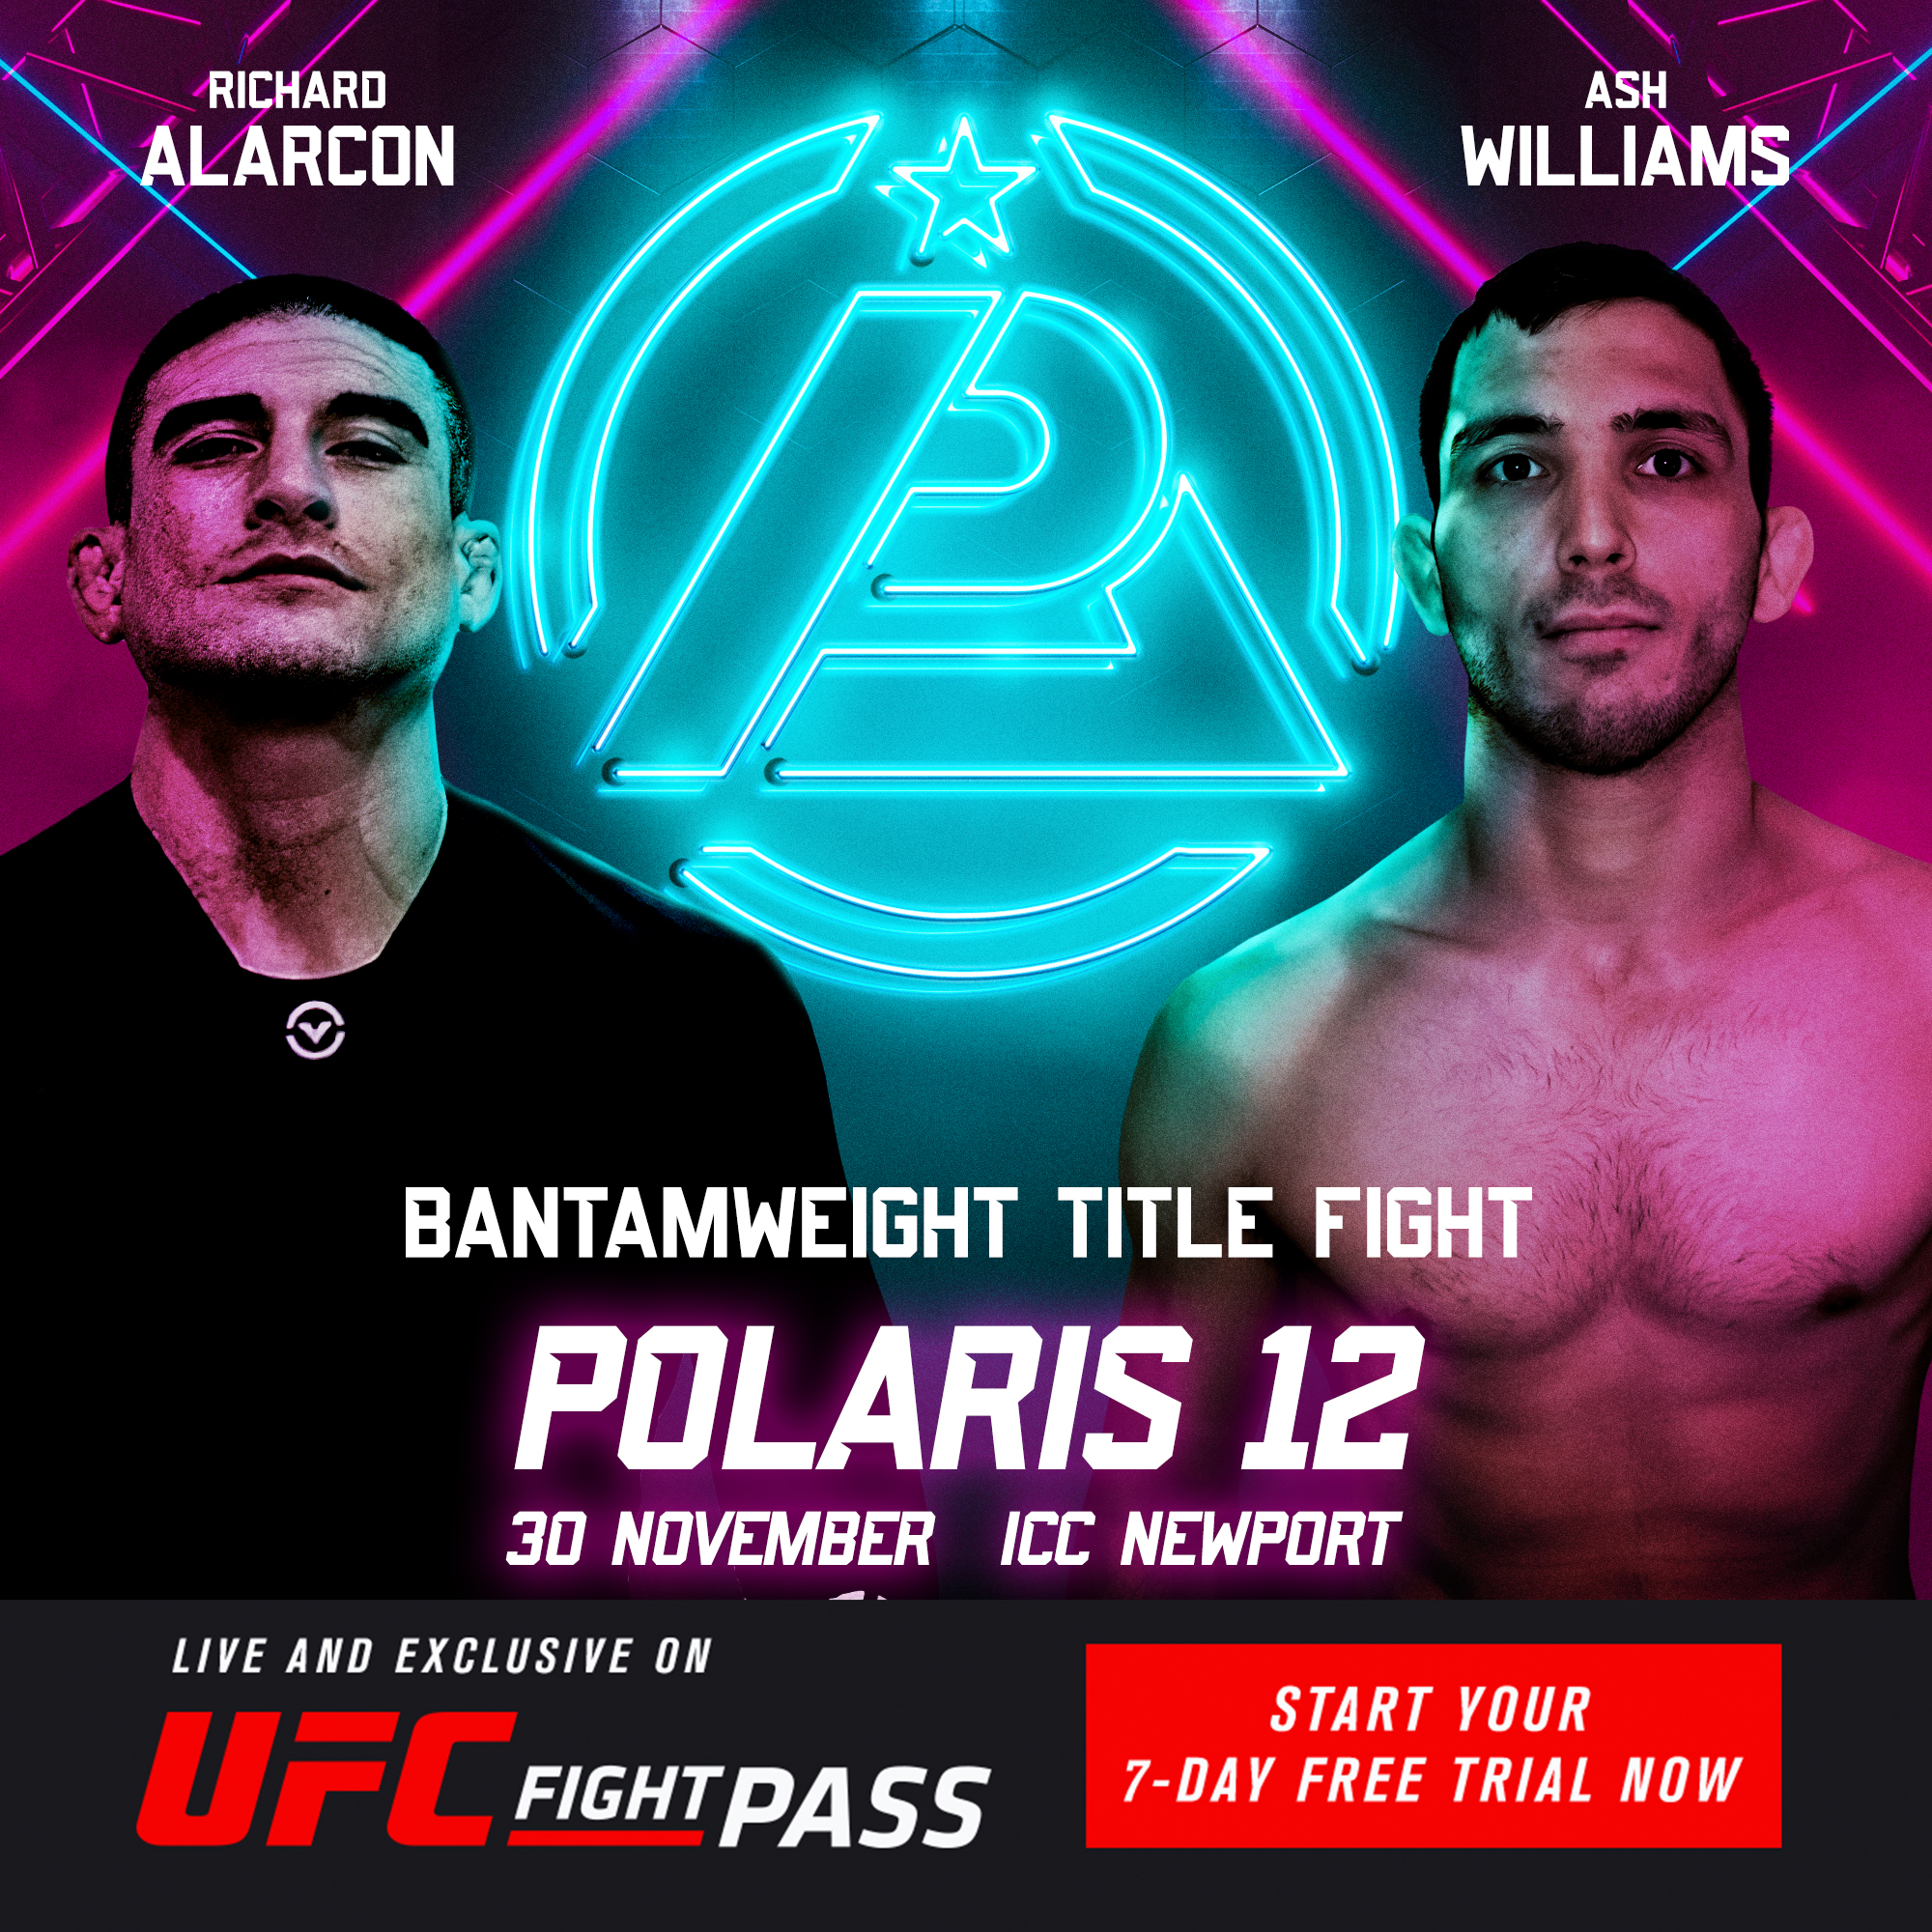 Polaris 12 - Richard Alarcon VS Ash Williams